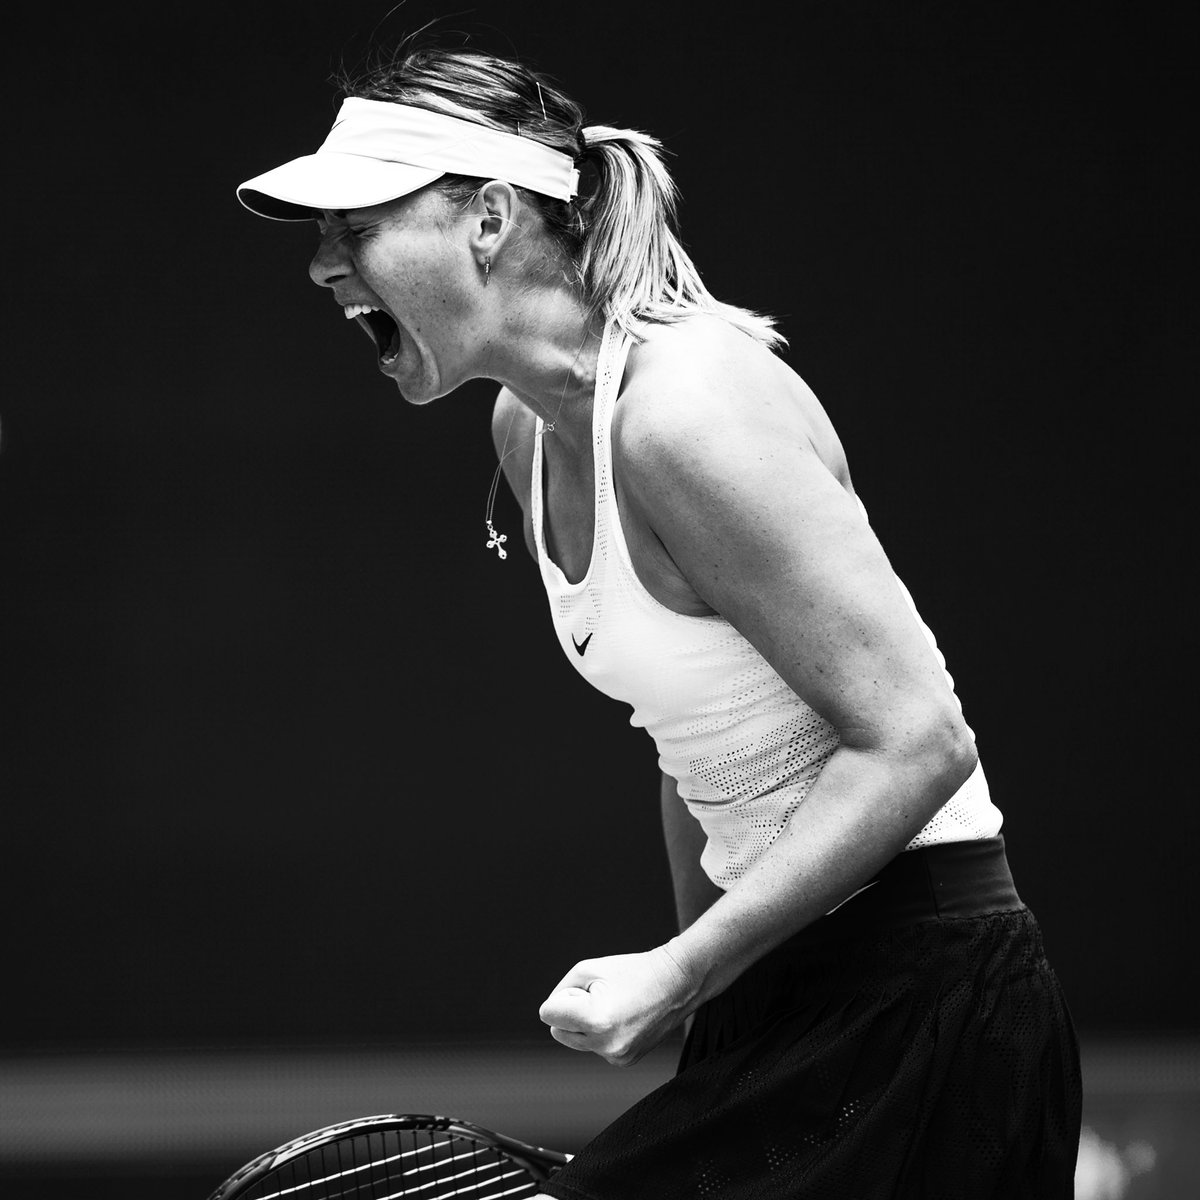 RT @Nikecourt: If you love this game enough, it will love you back. @MariaSharapova https://t.co/bmlRgO8oPz